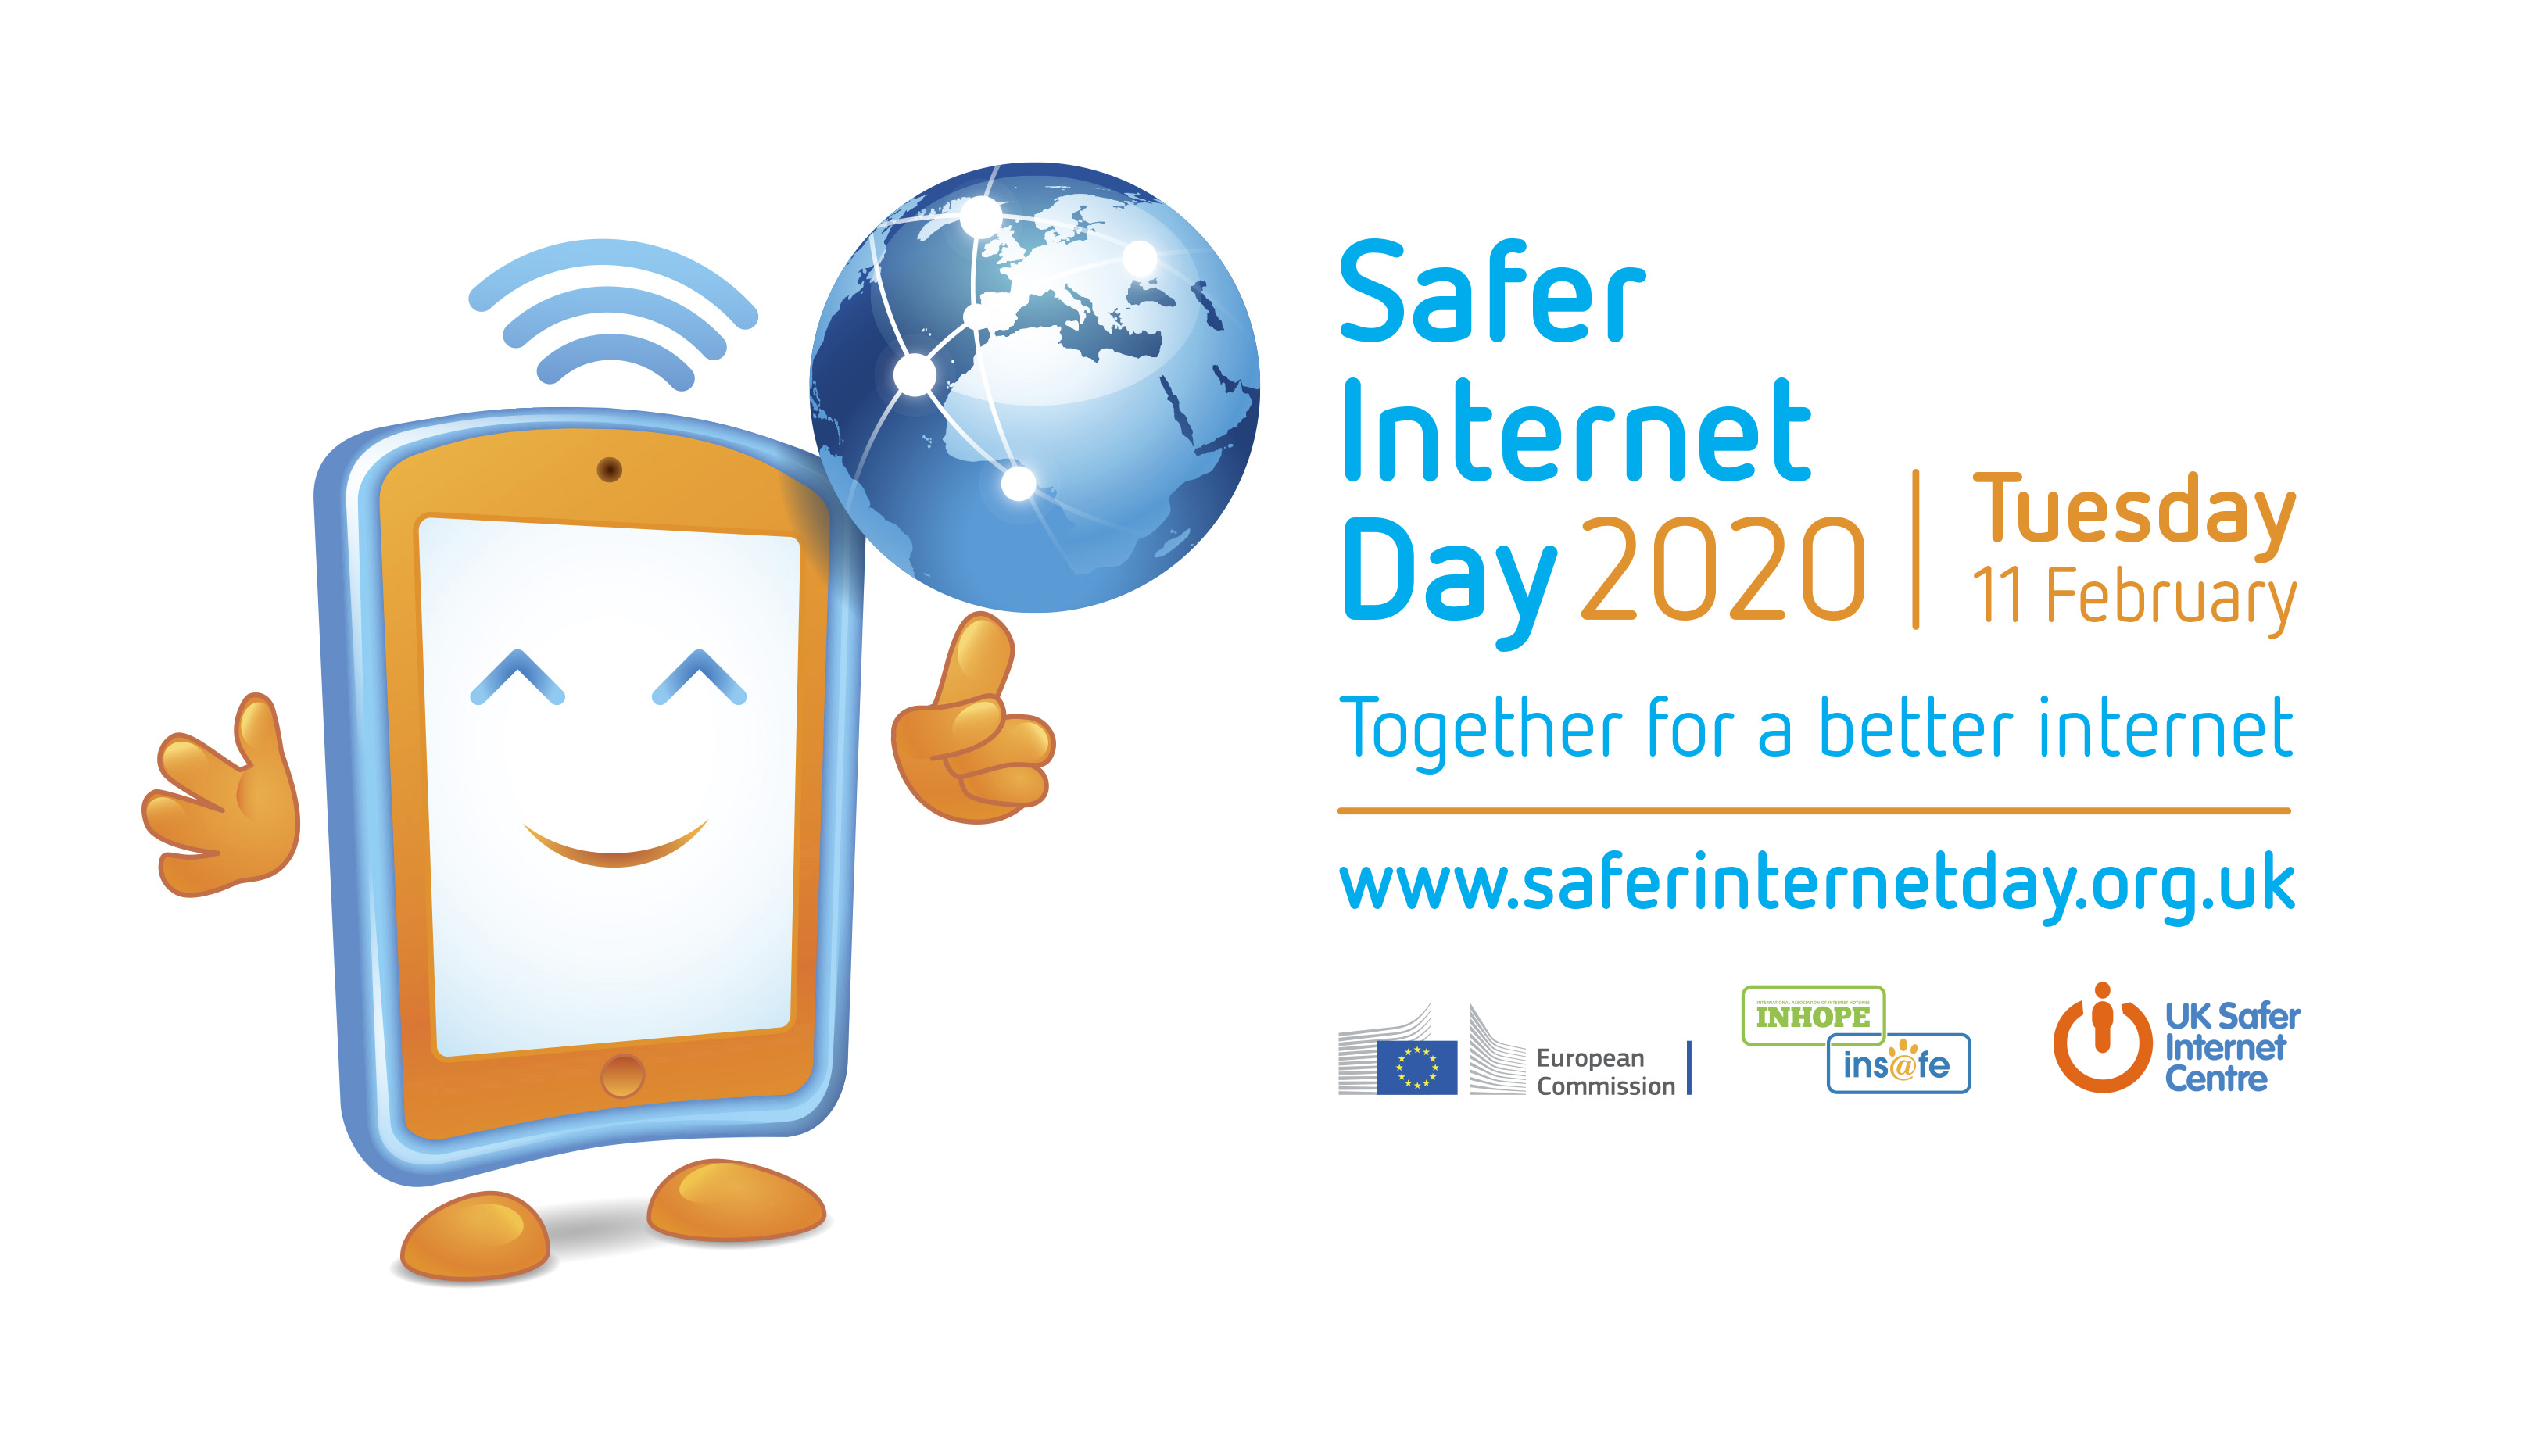 Sid2020 ec insafeinhope  uksic partner logo uk web